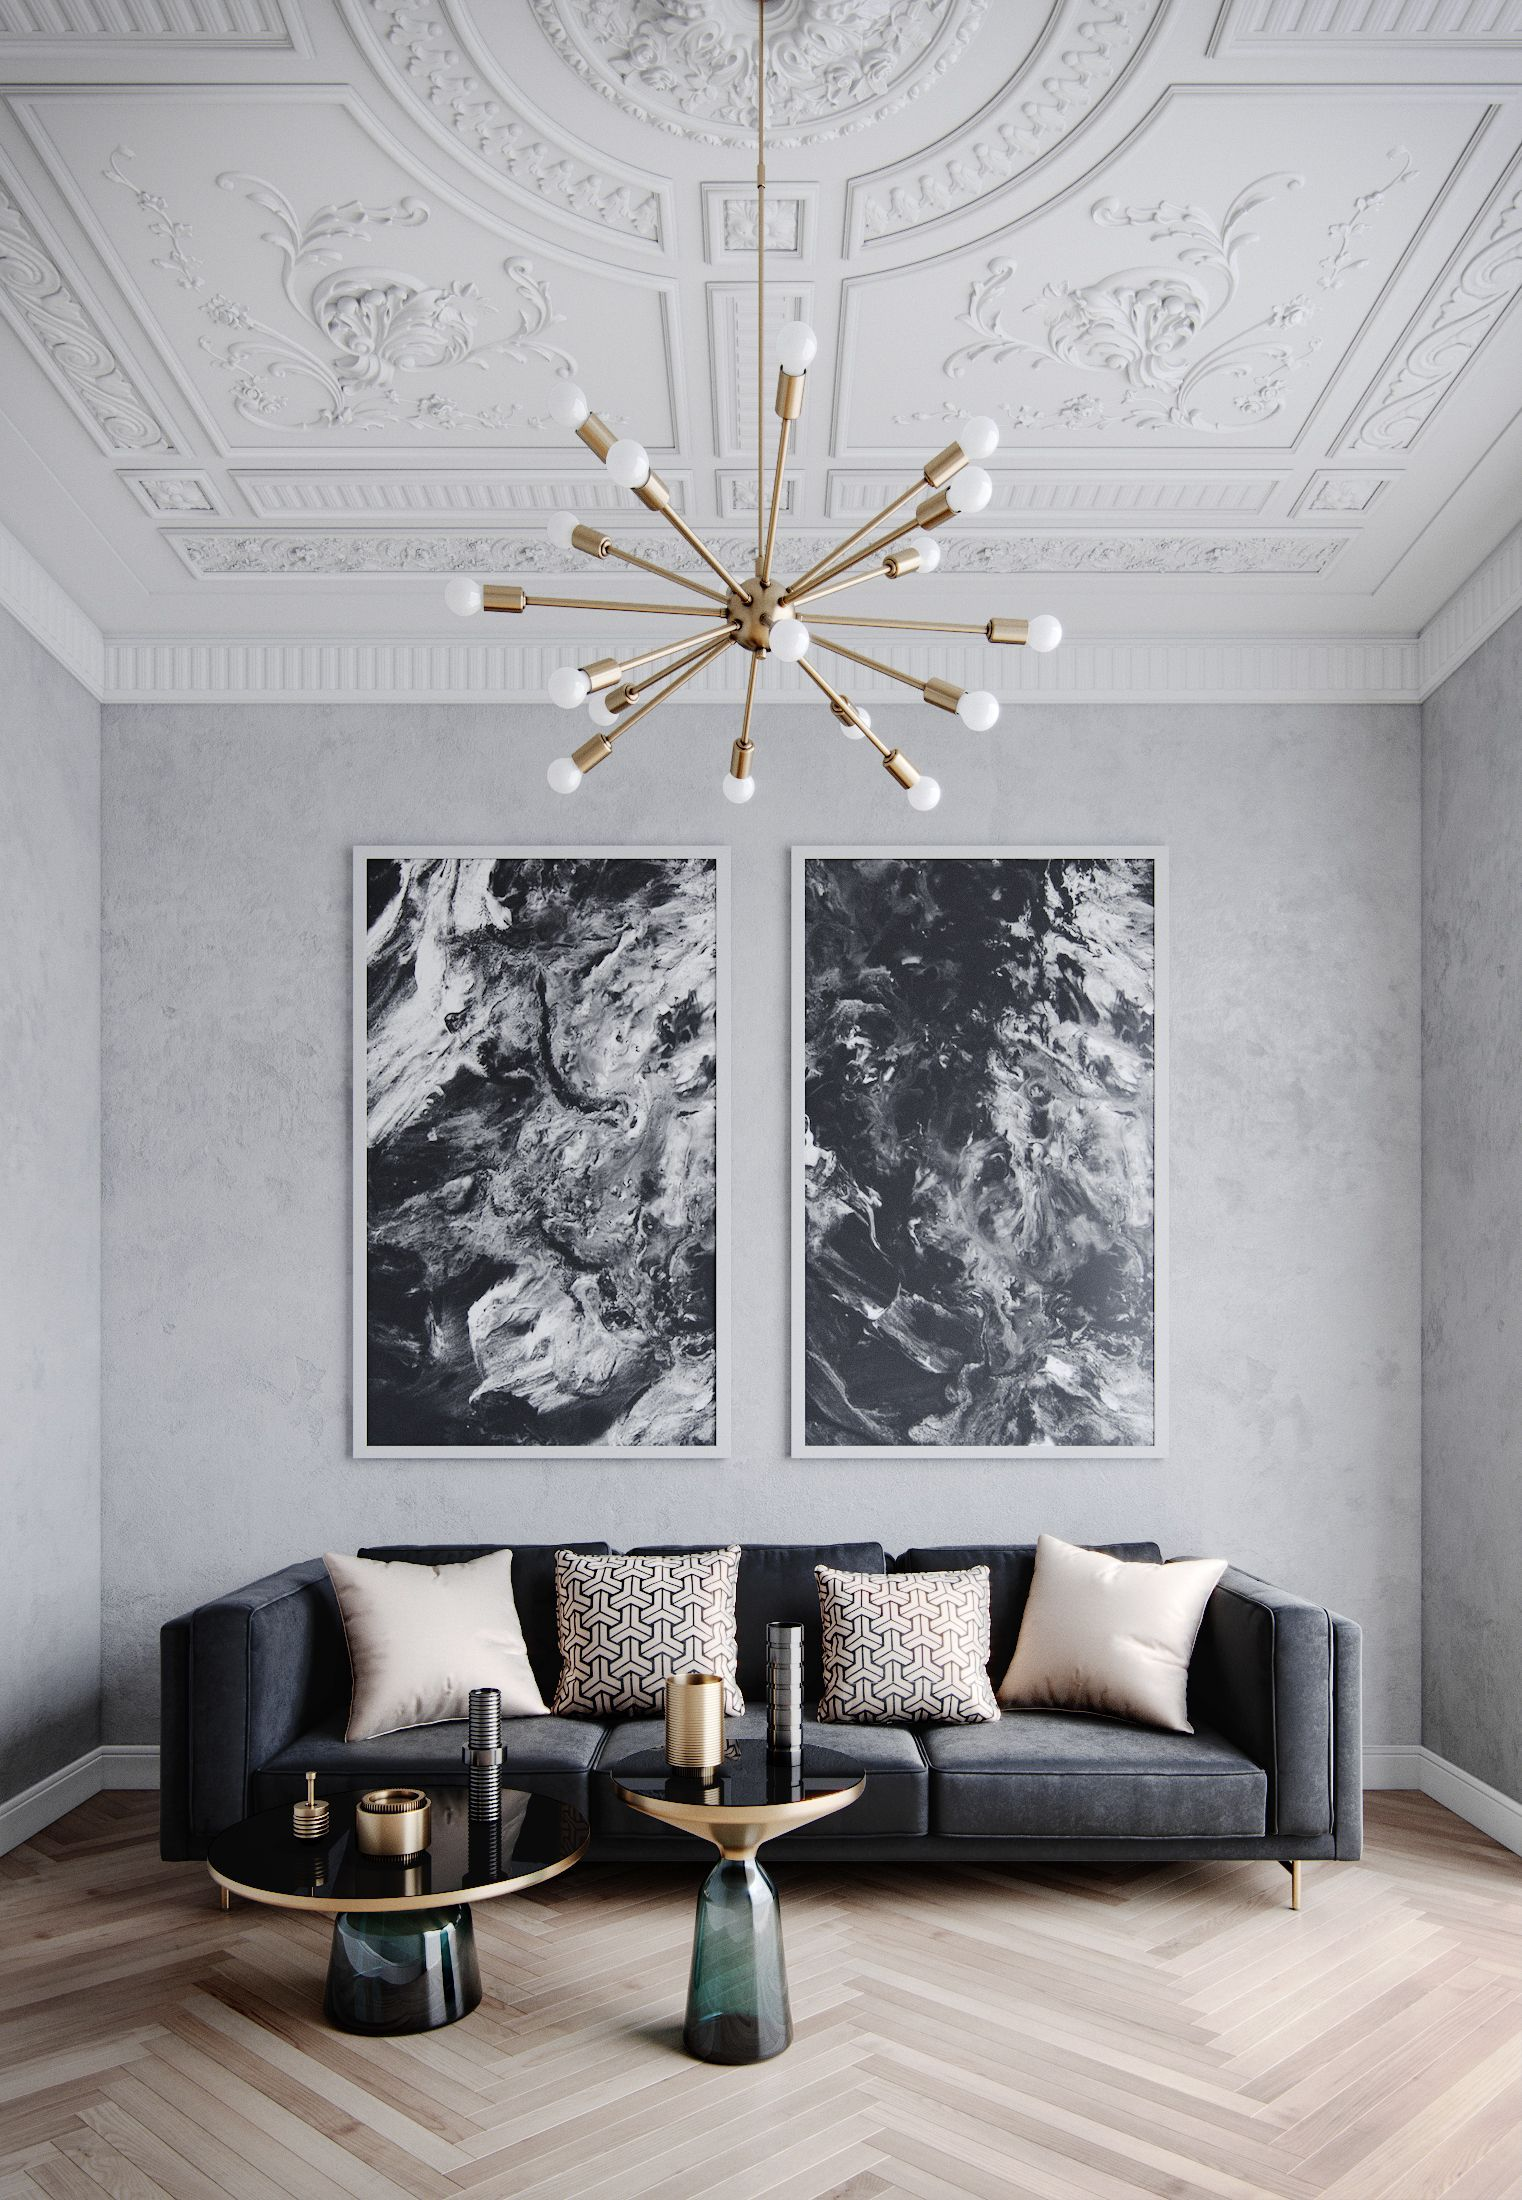 The 5 Best Interior Designers Of The World With Images